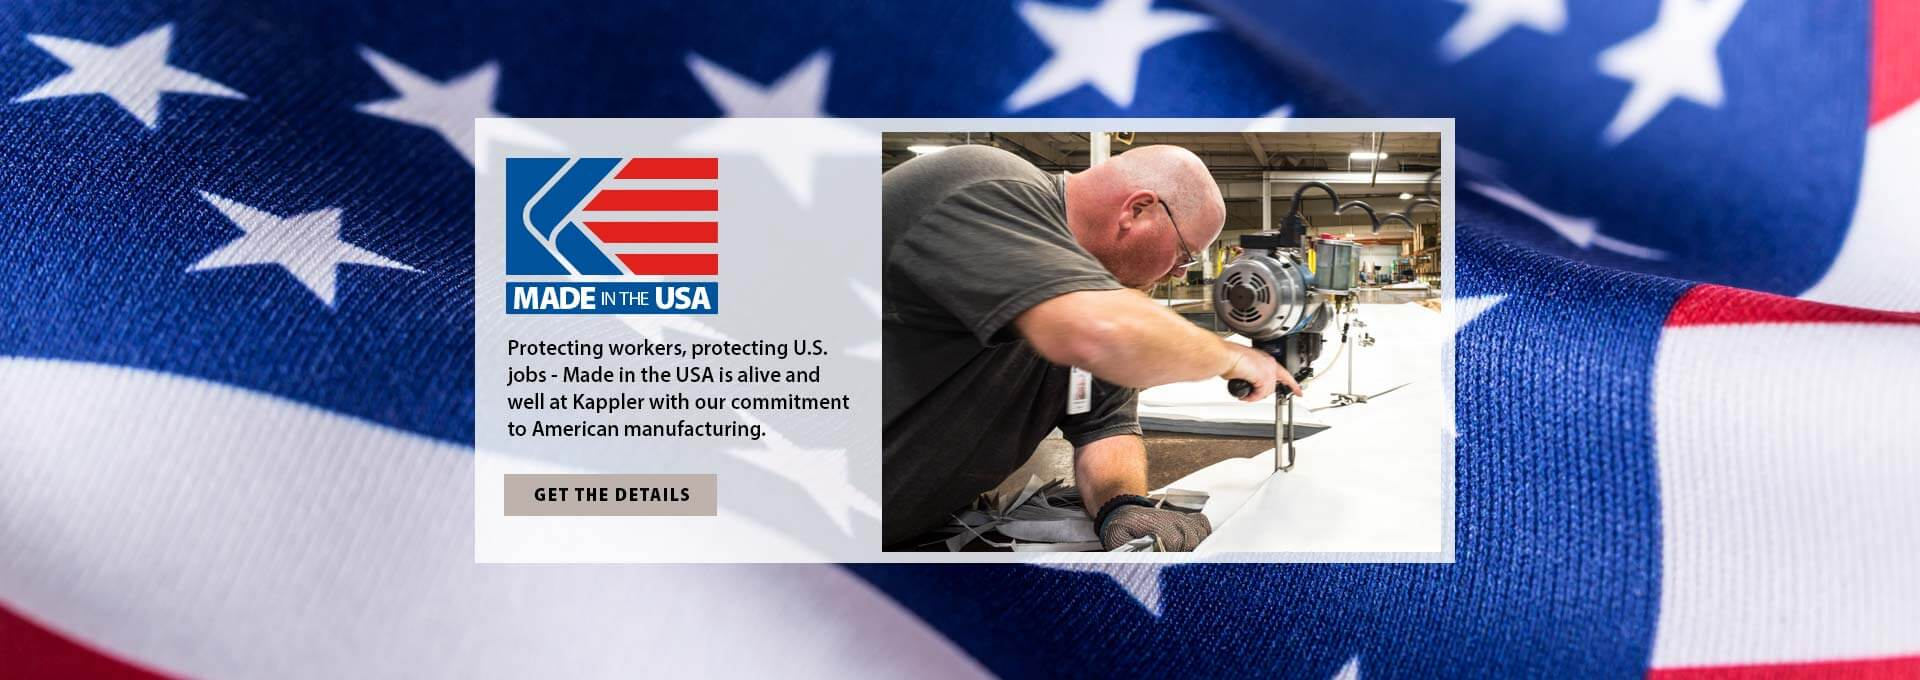 Kappler Products are Proudly Made in the USA